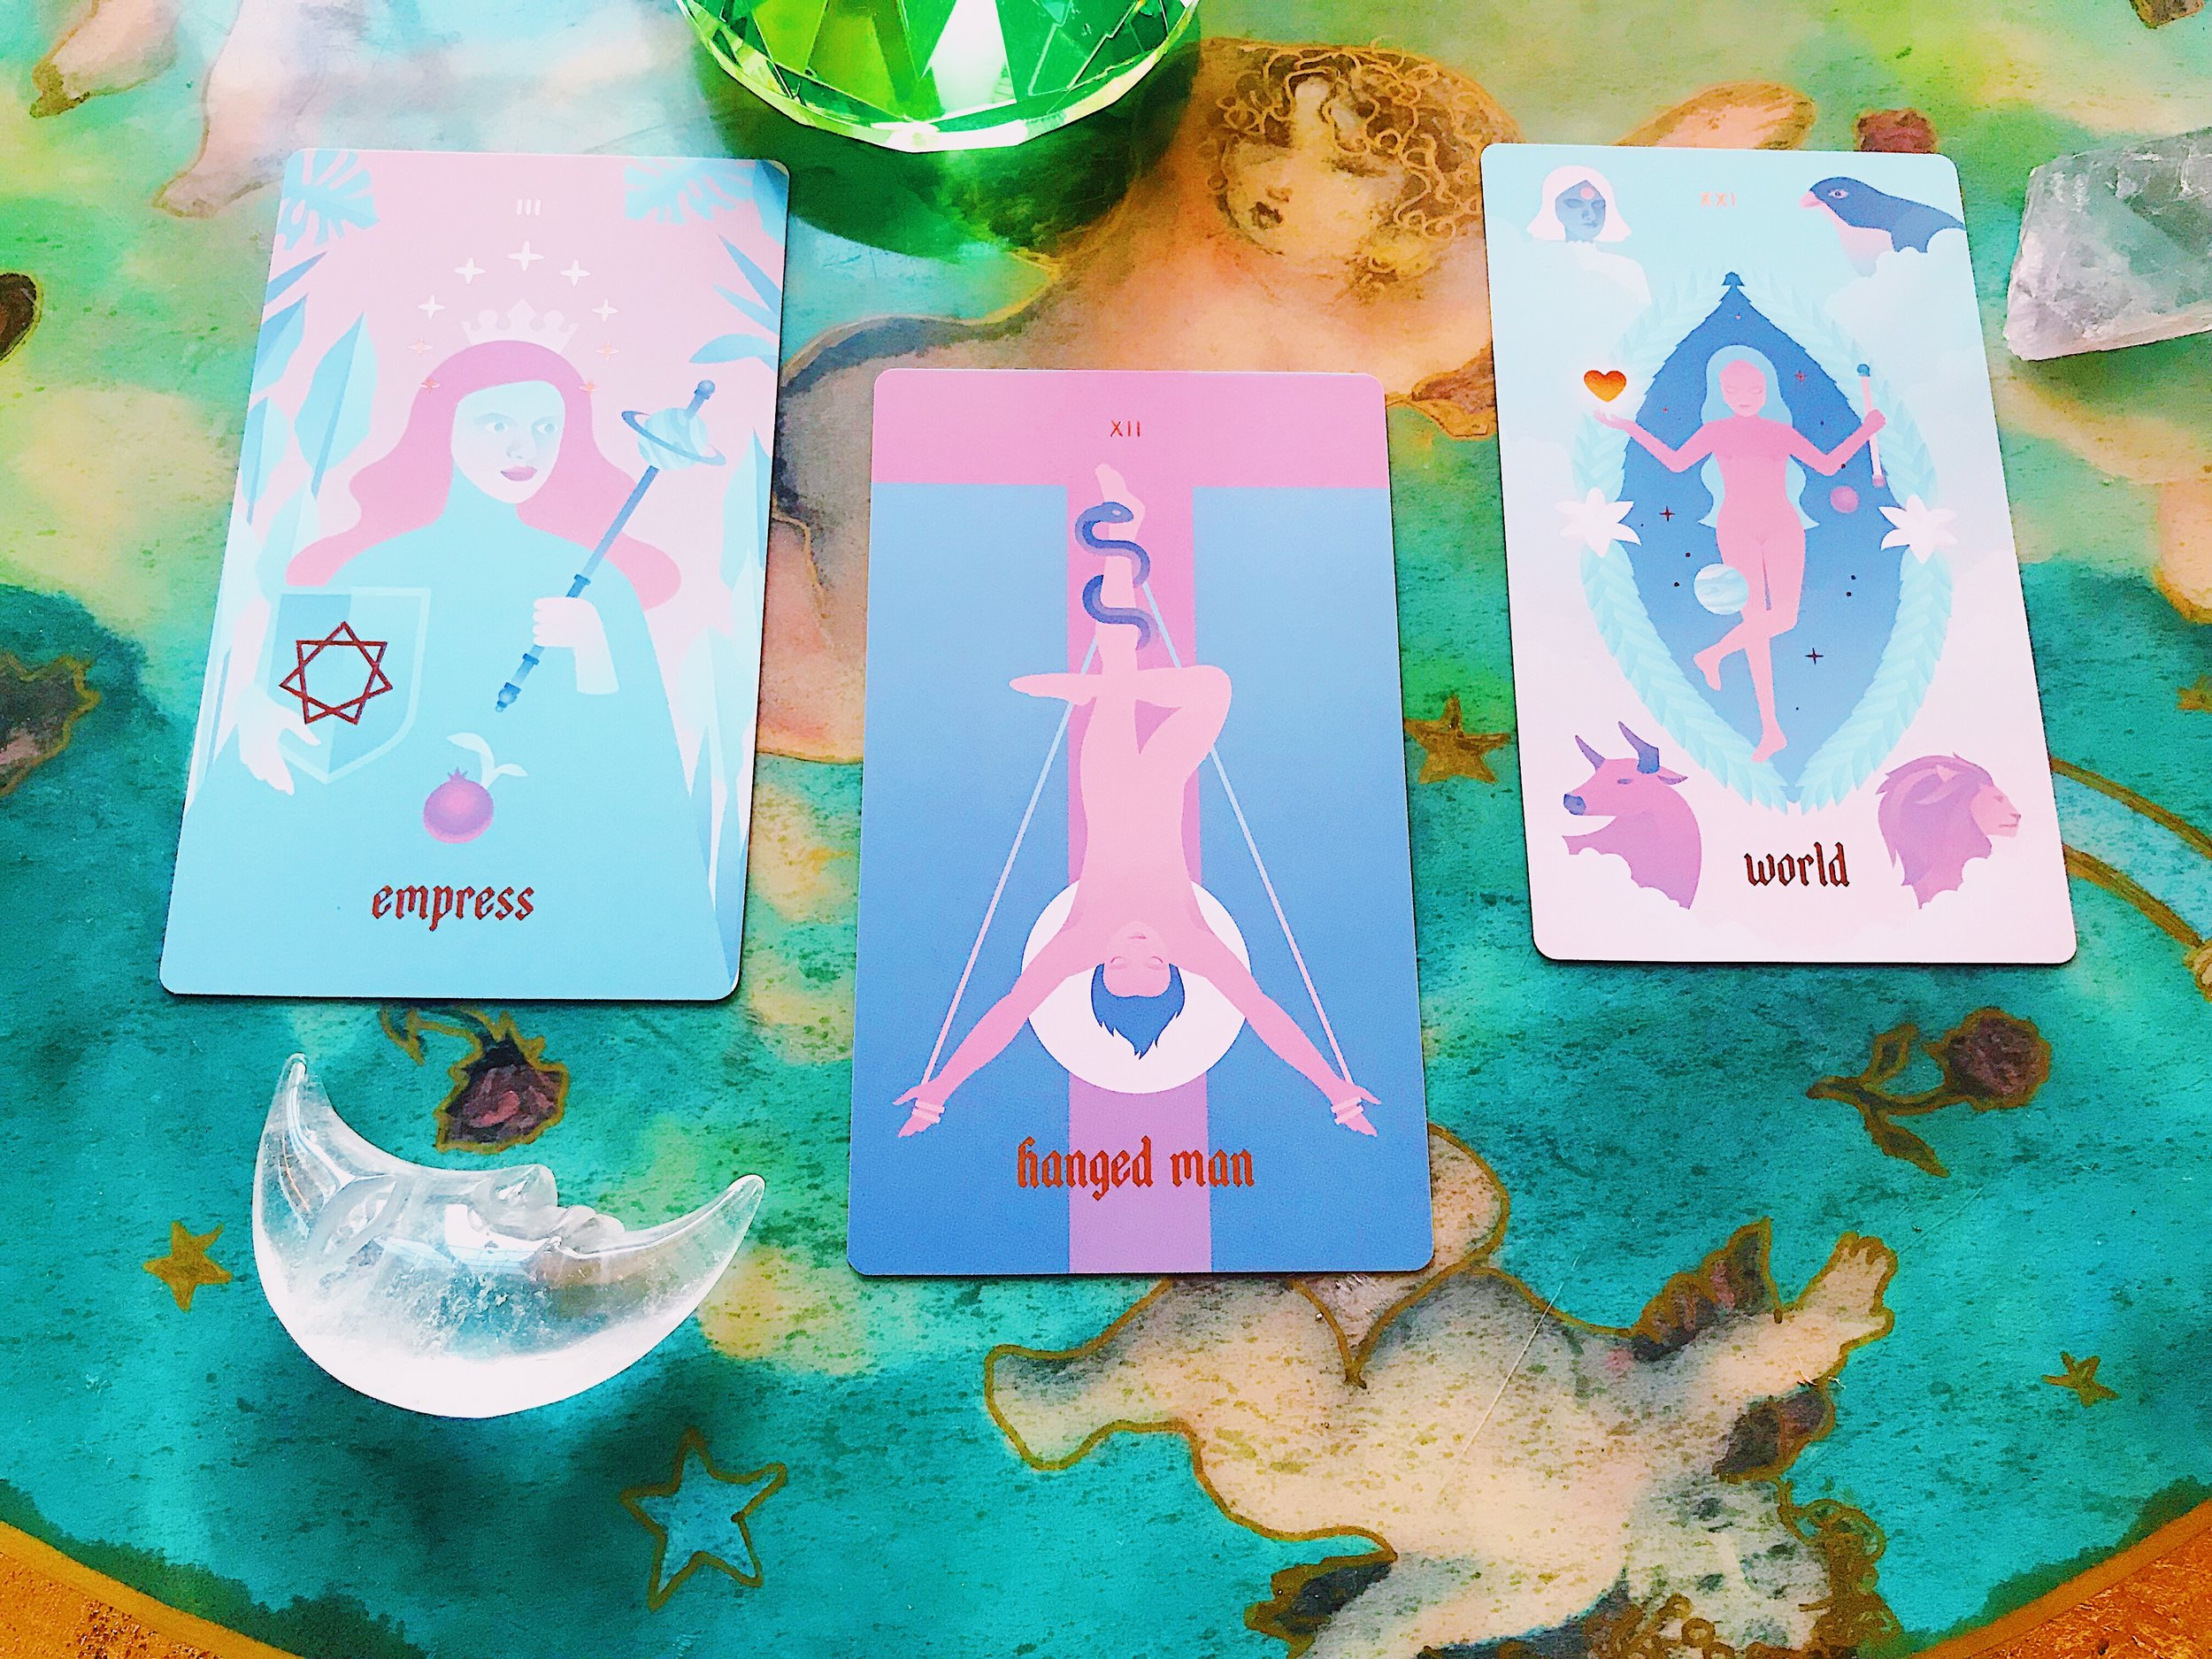 Seventh Sphere Tarot de Marseille deck